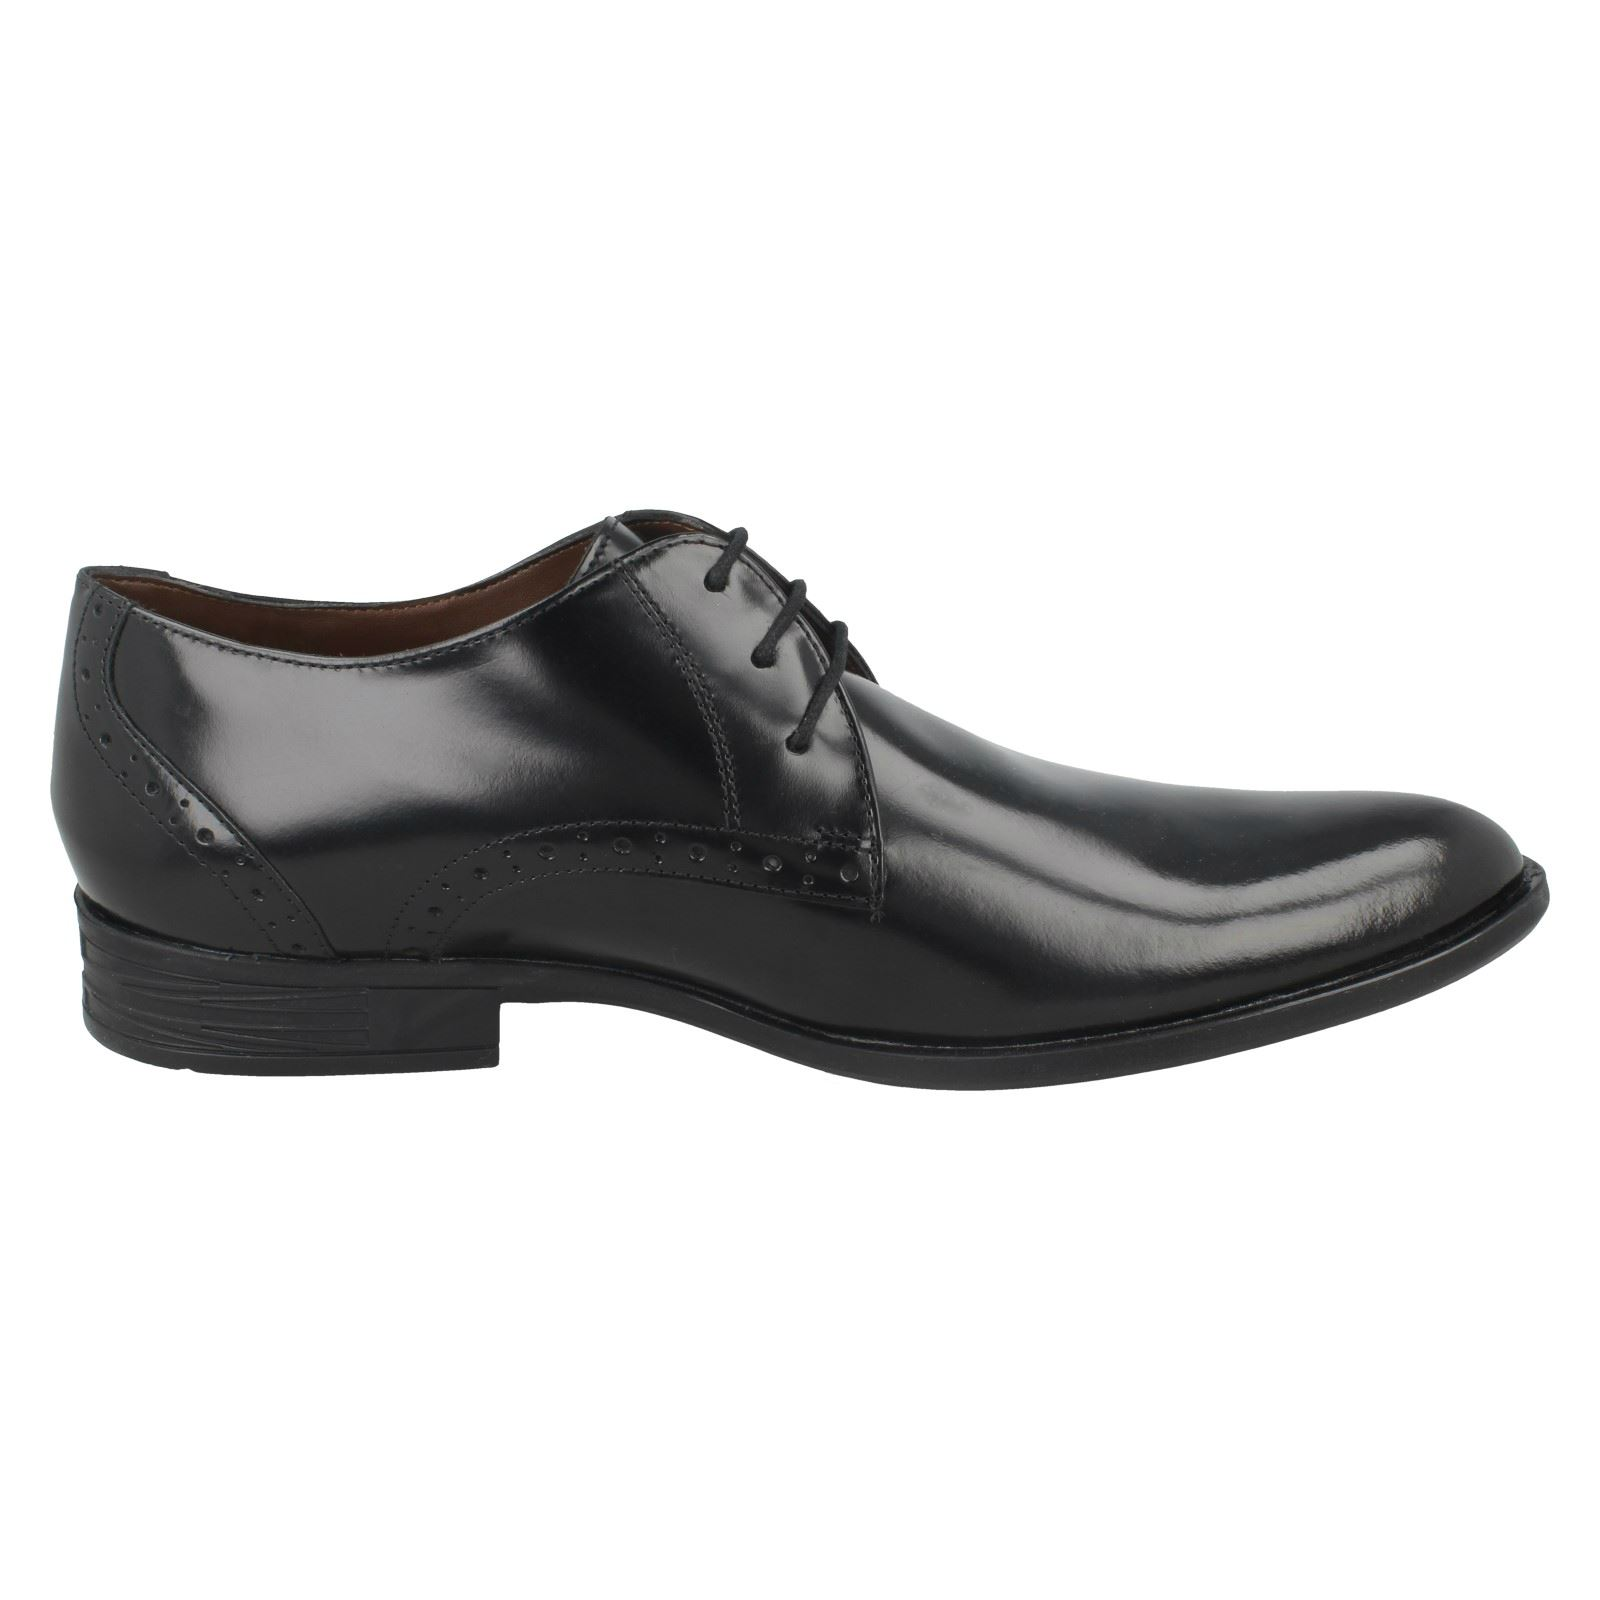 Up Herren Hush Puppies Lace Up  Formal Schuhes 'Kensington' 330de9